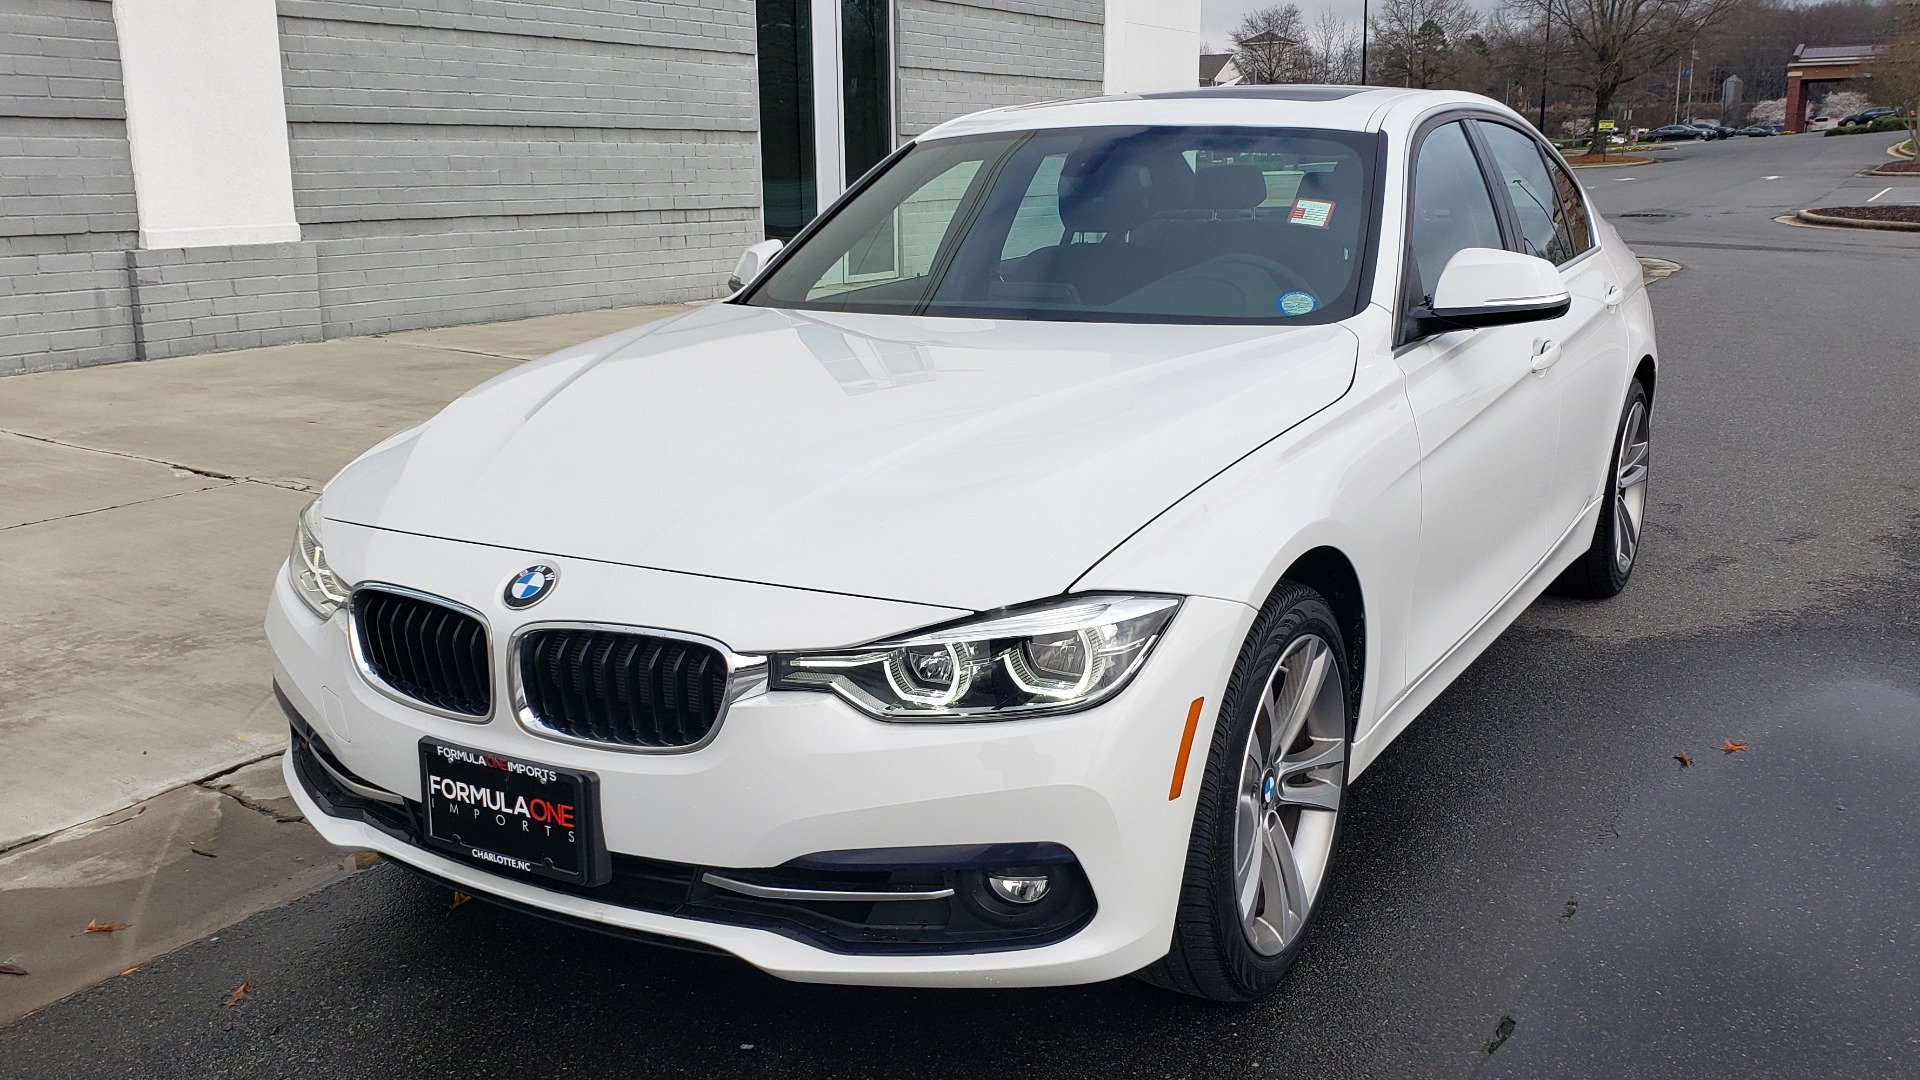 Used 2018 BMW 3 SERIES 330I XDRIVE / CONV PKG / SUNROOF / HTD STS / REARVIEW for sale $24,795 at Formula Imports in Charlotte NC 28227 6